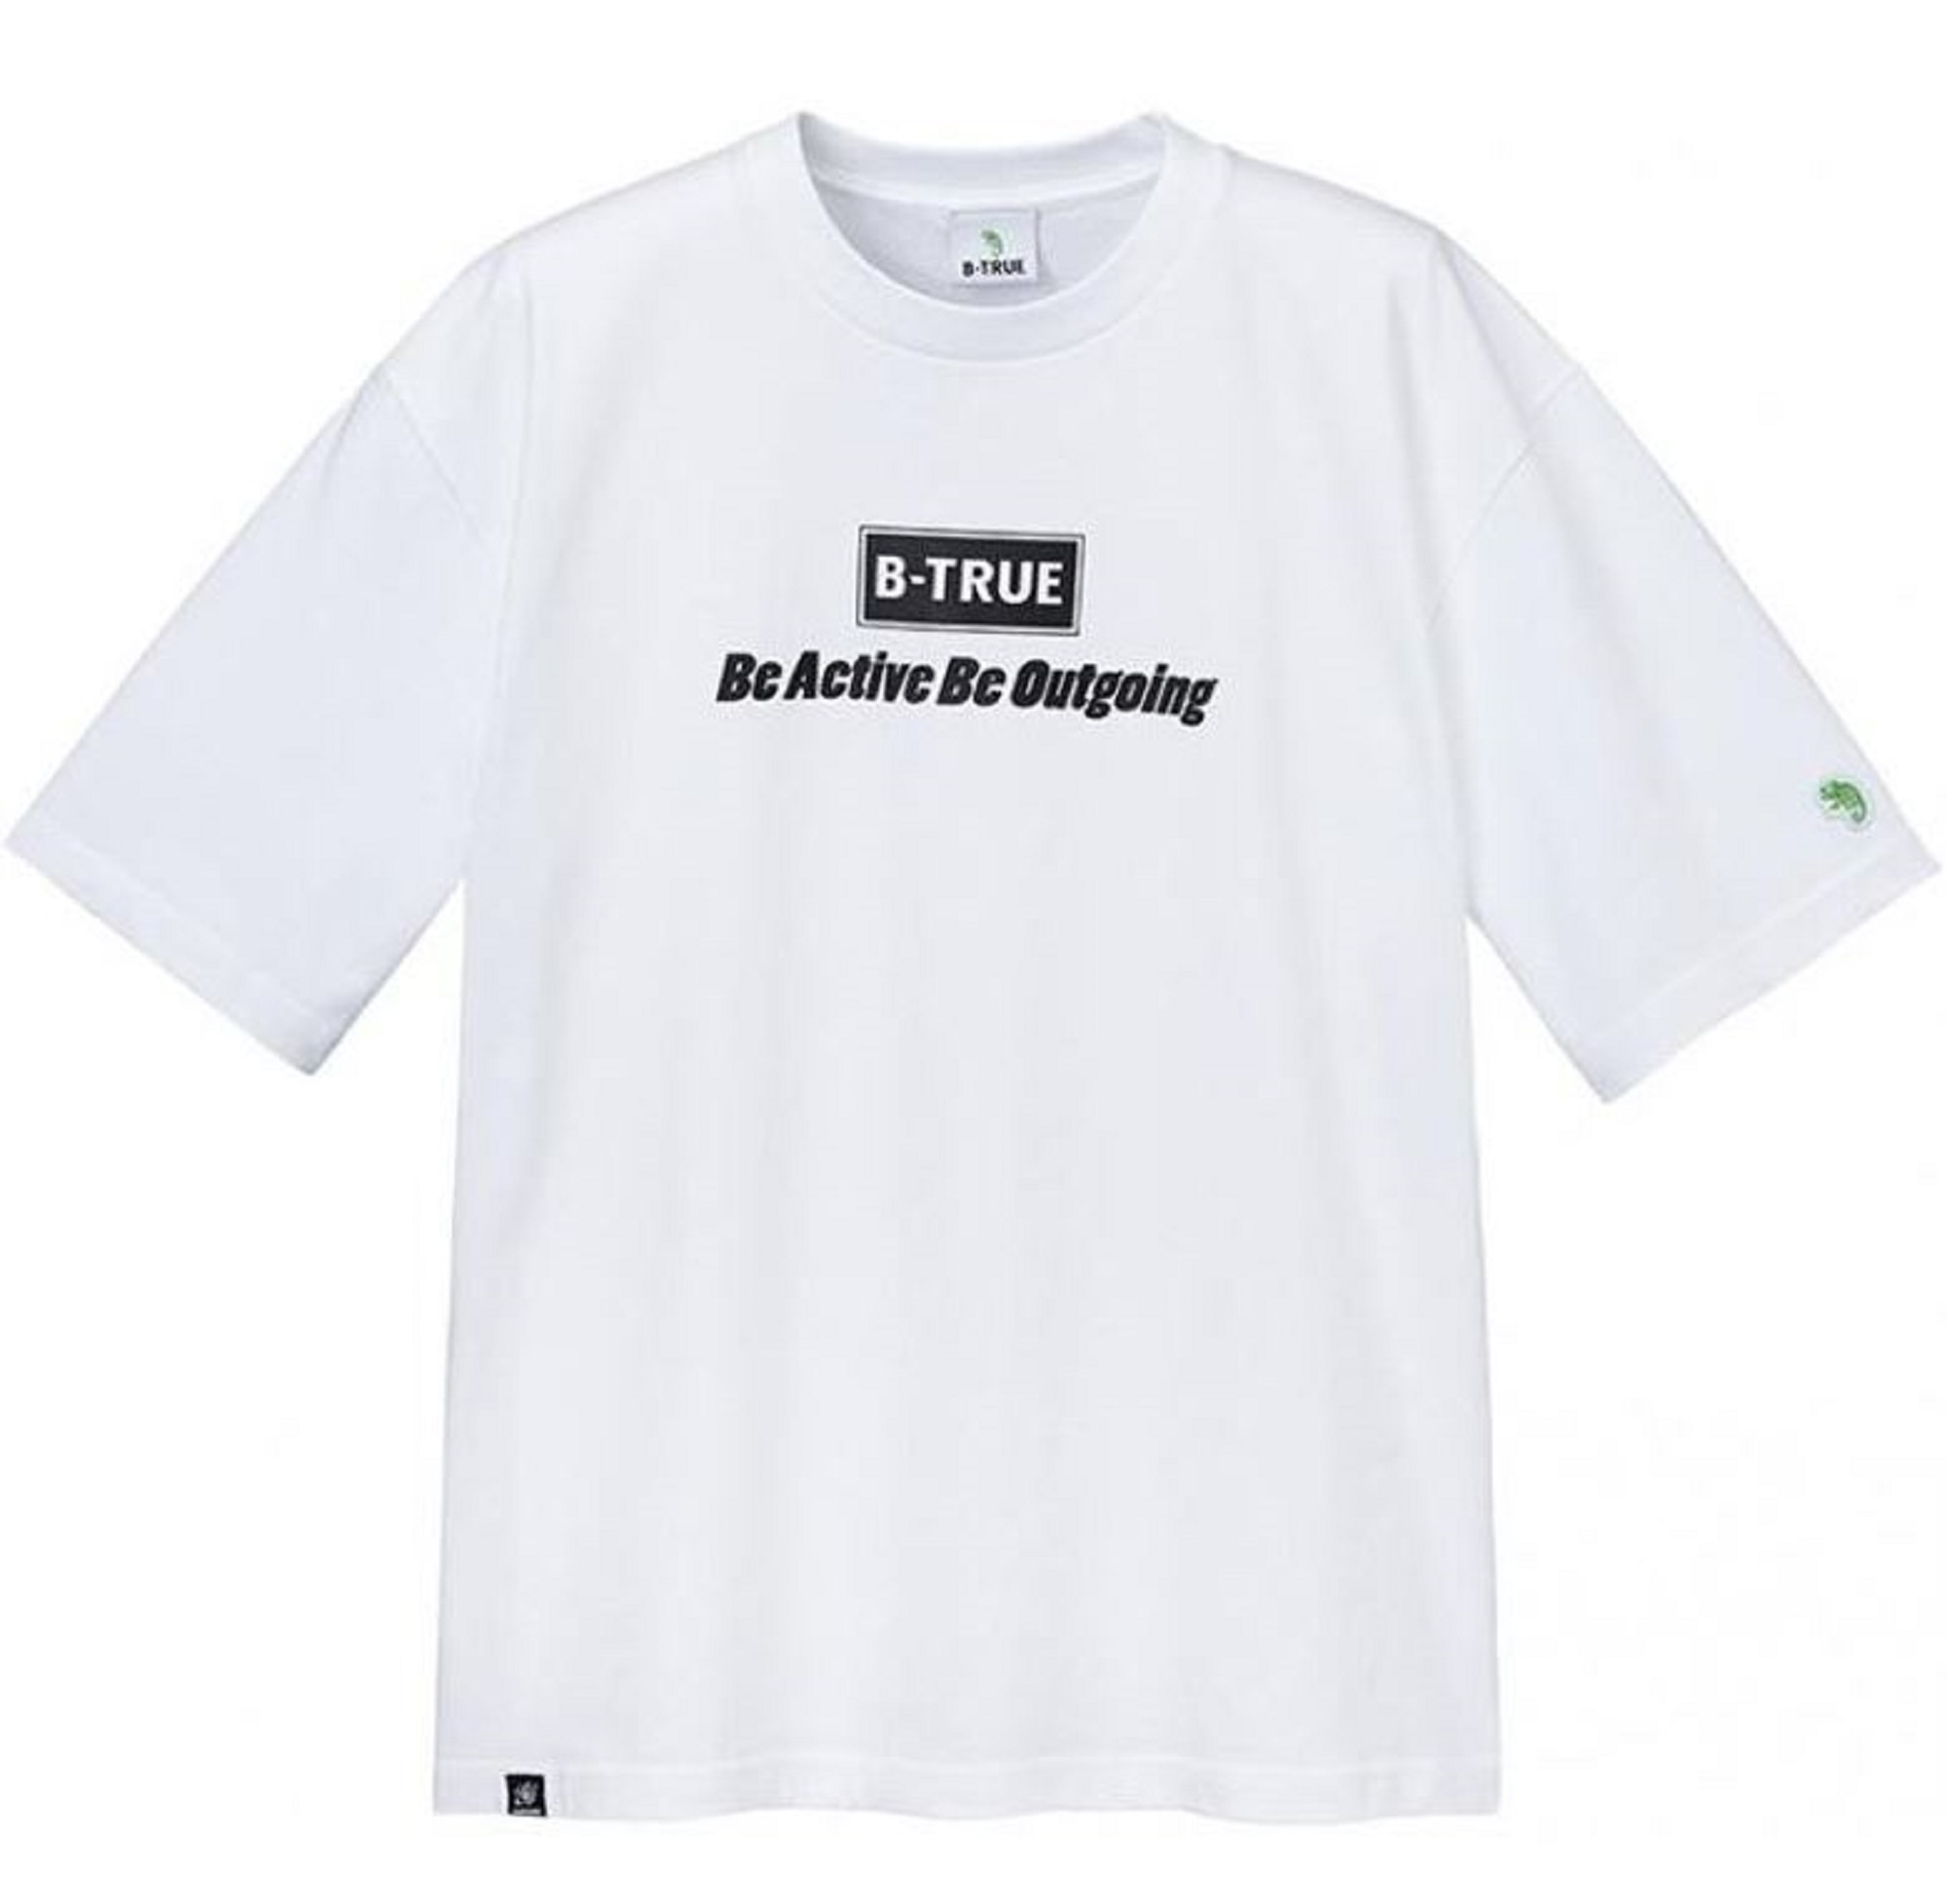 Evergreen T-Shirt Dry Fit B-True Big Tee Type Size L White (6191)